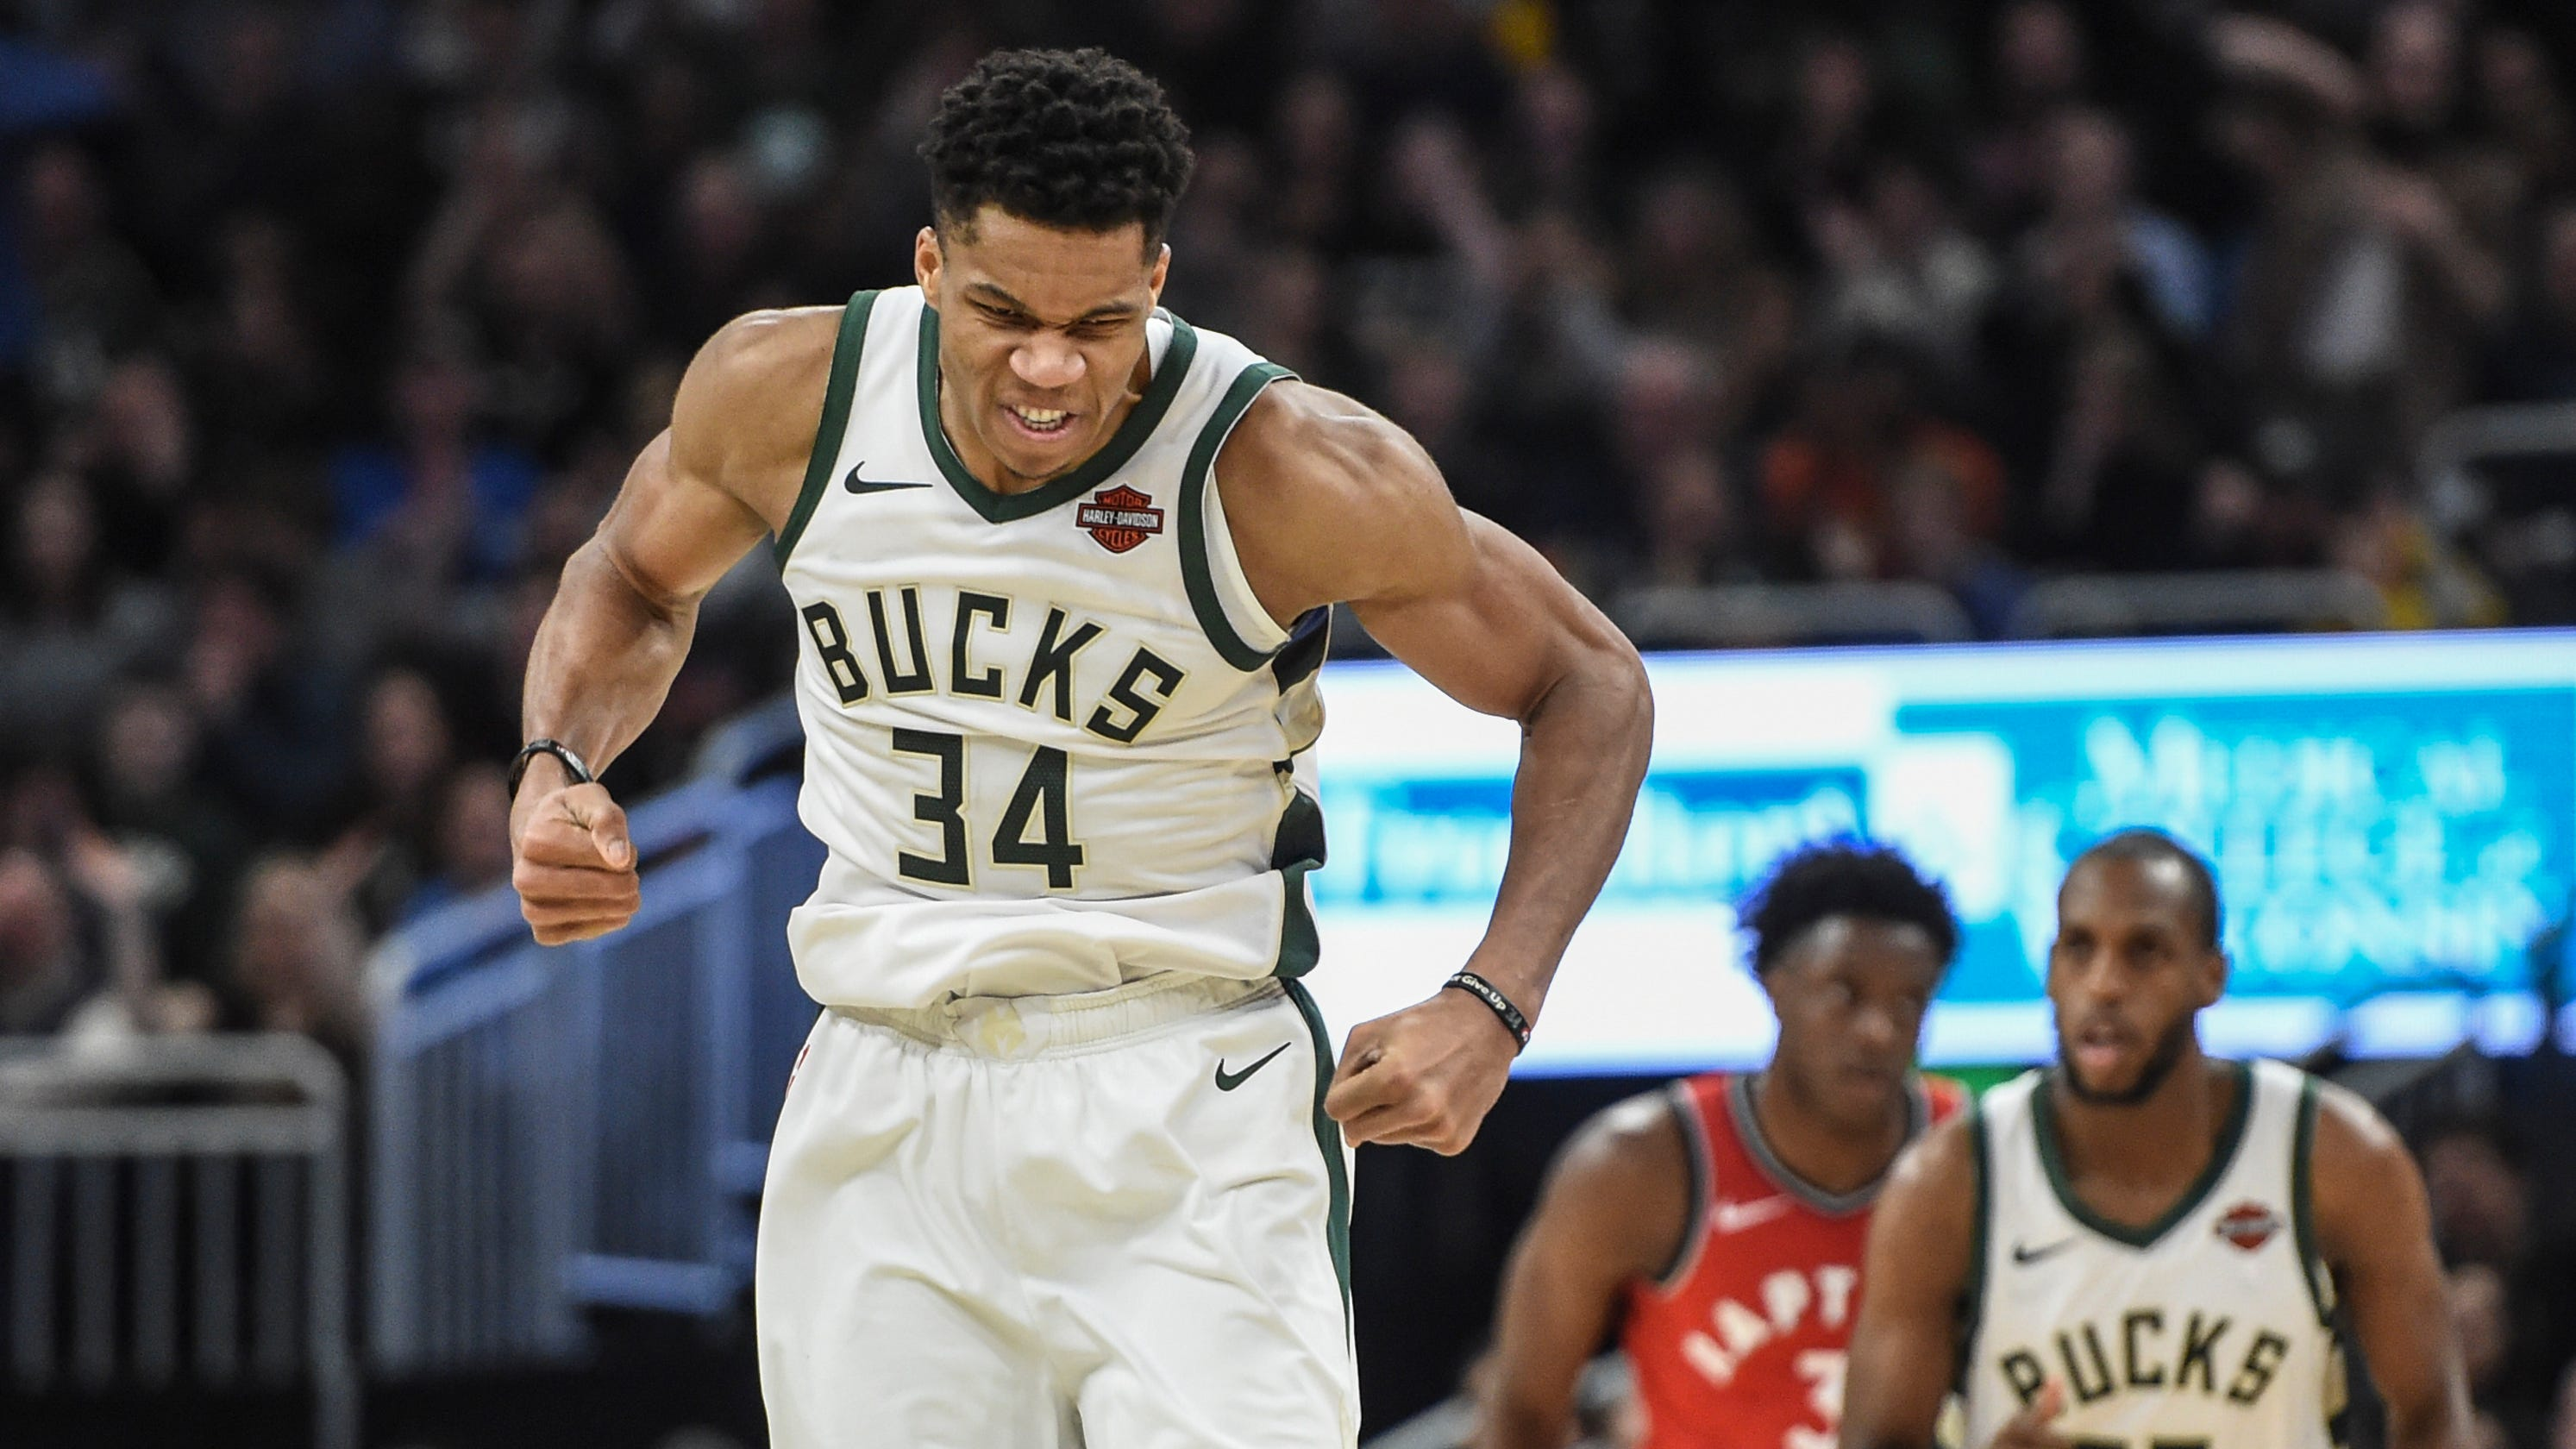 eb821cbc45dd  He s better   Shaquille O Neal gives Giannis Antetokounmpo the ultimate  compliment